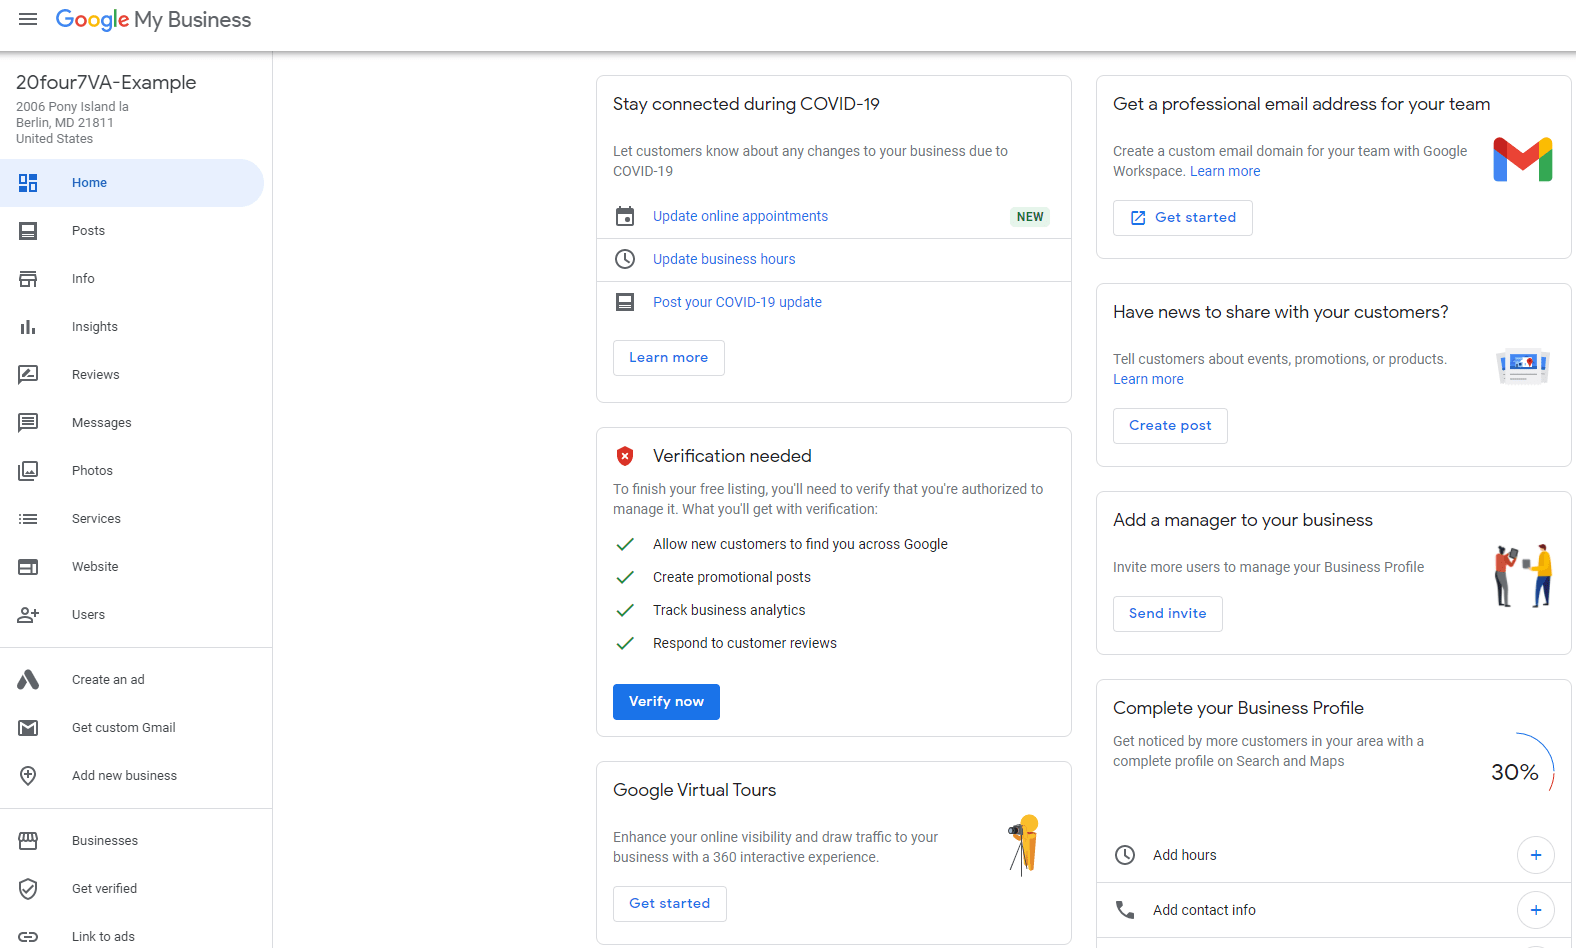 an image showing the Google Business listing dashboard